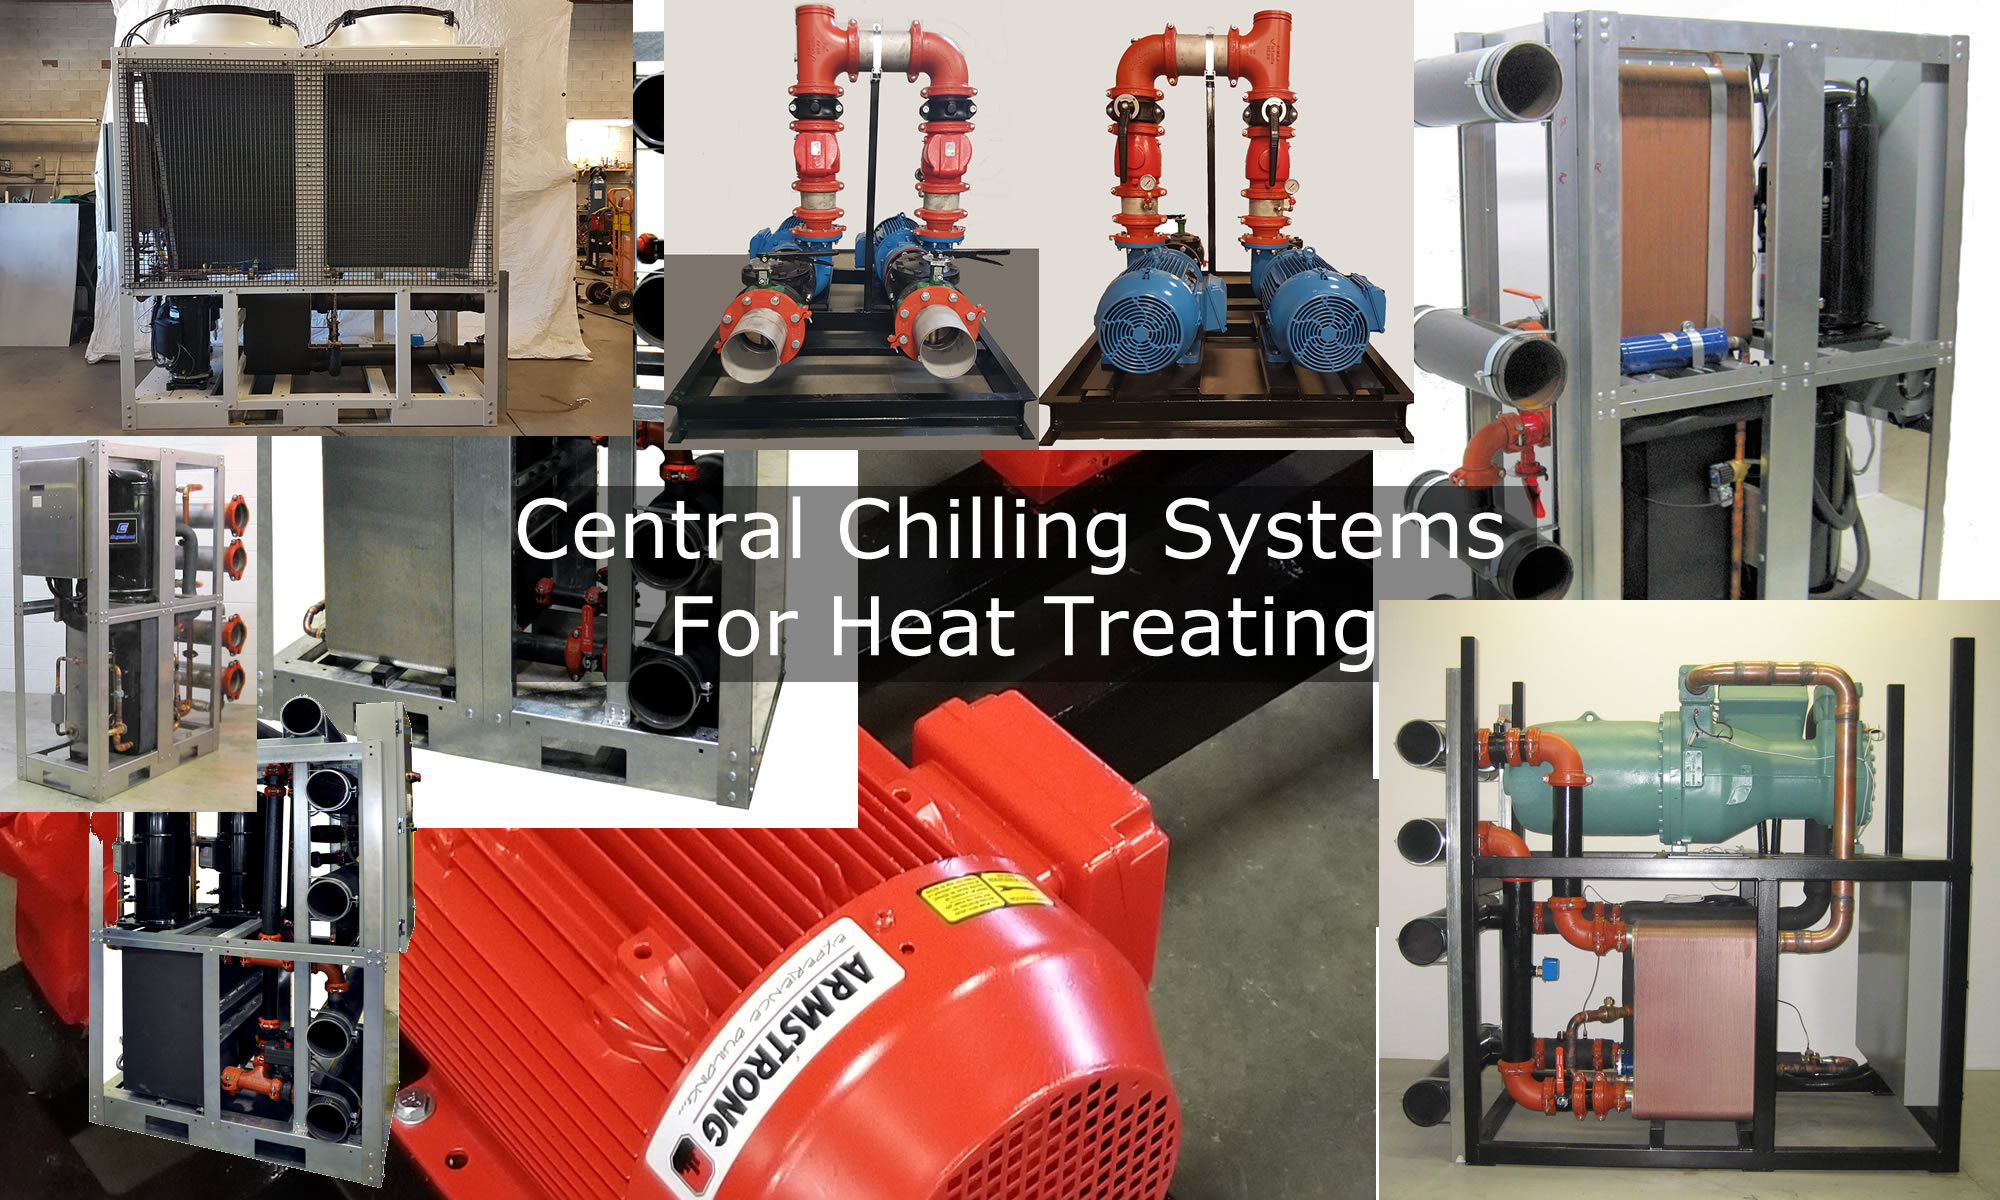 Central Chilling Systems For Heat Treating